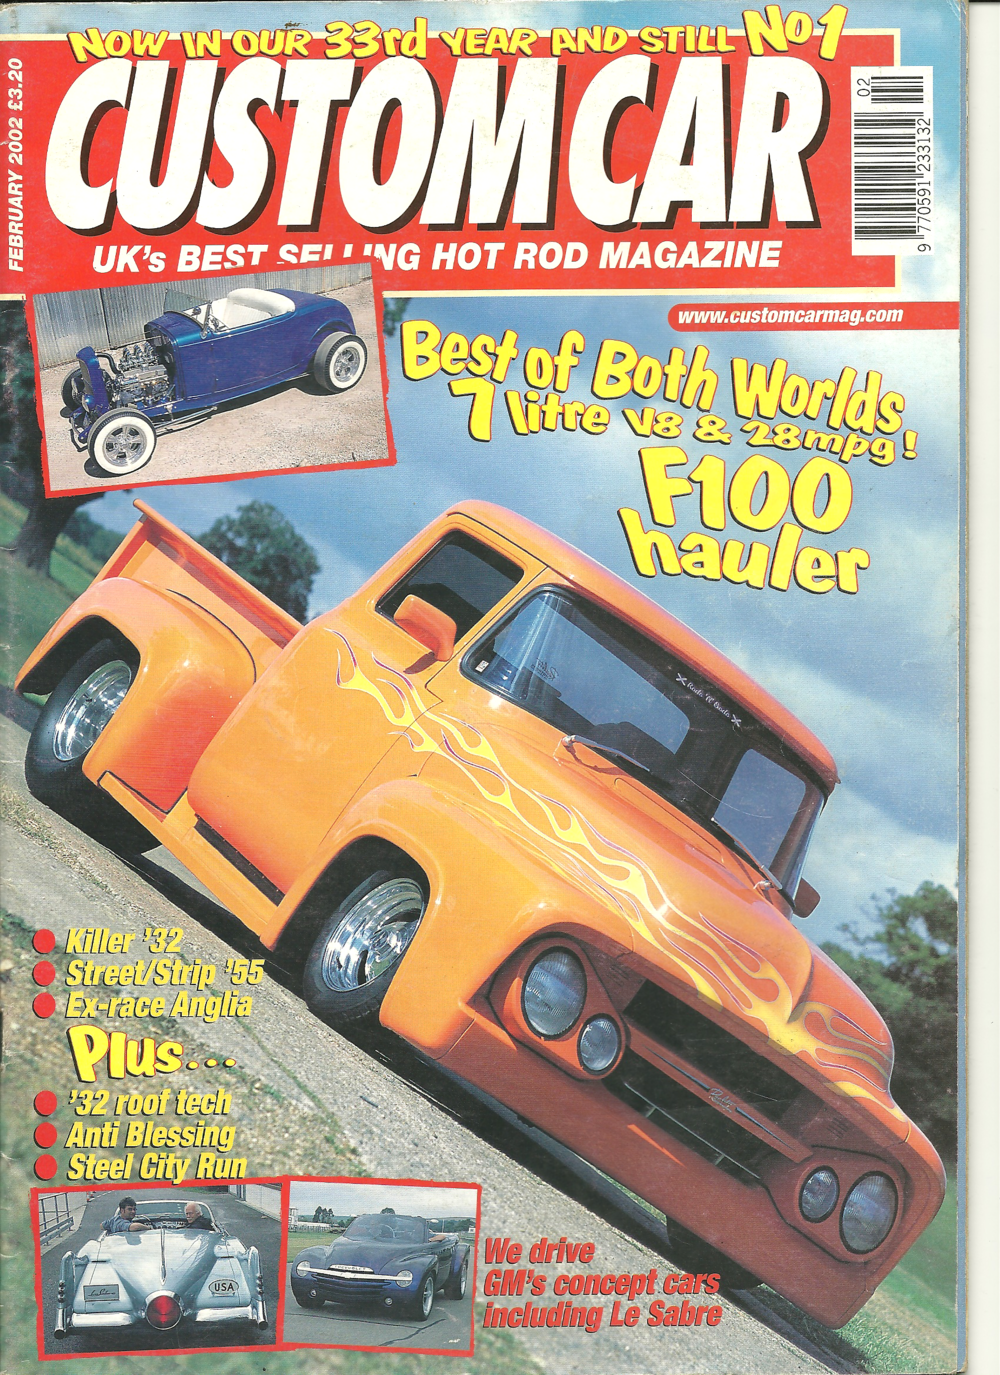 Cover of Custom Car - the UK's Best selling Hot Rod Magazine - February 2002